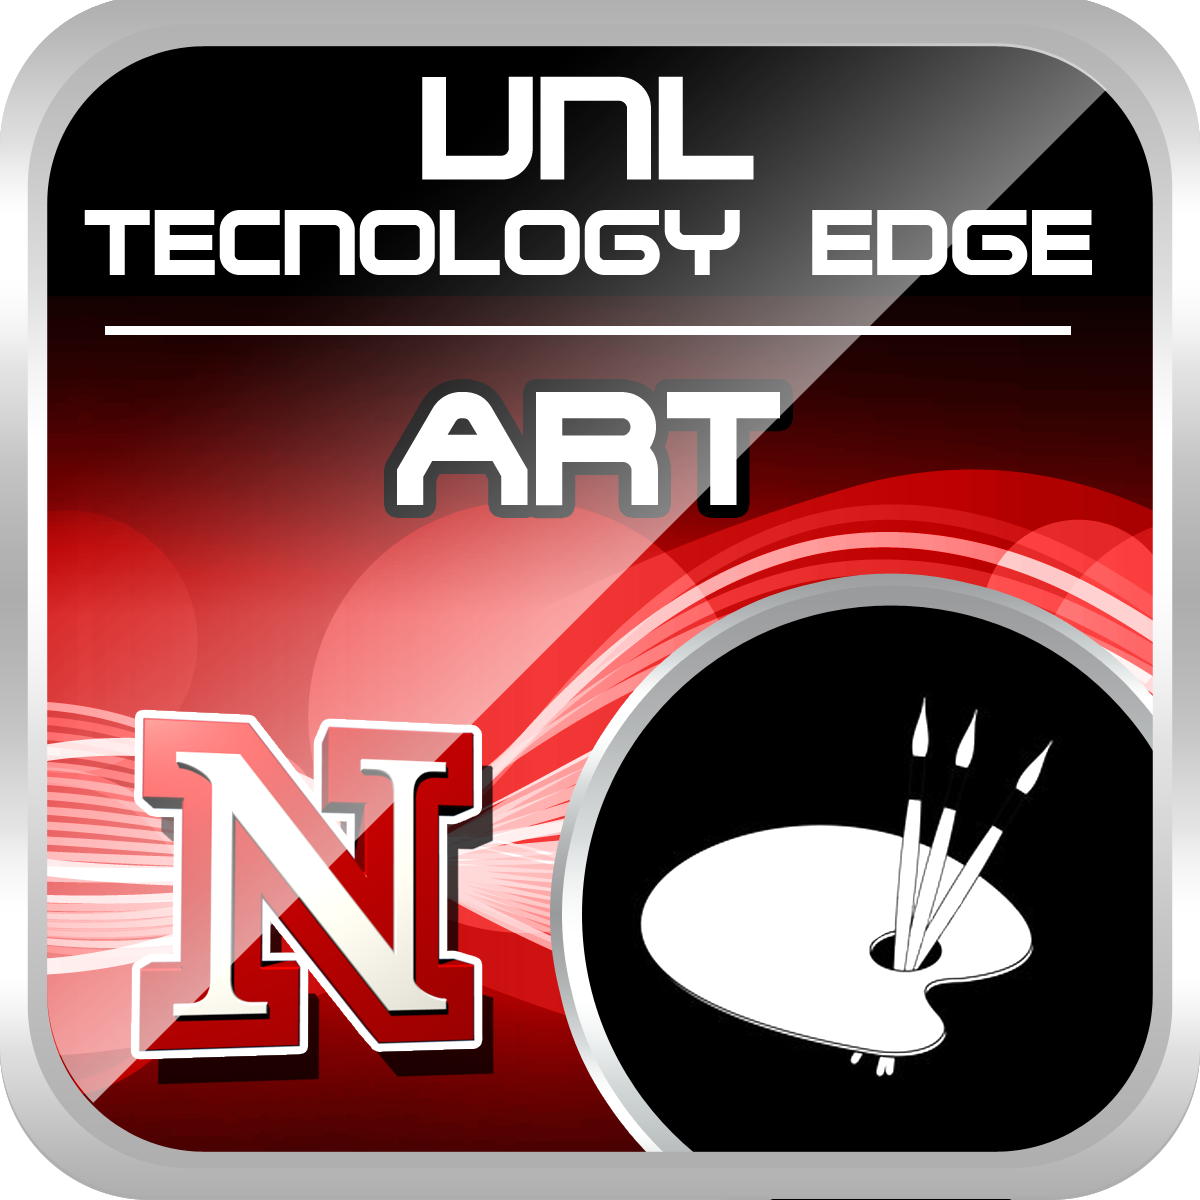 Tech EDGE - Art Image